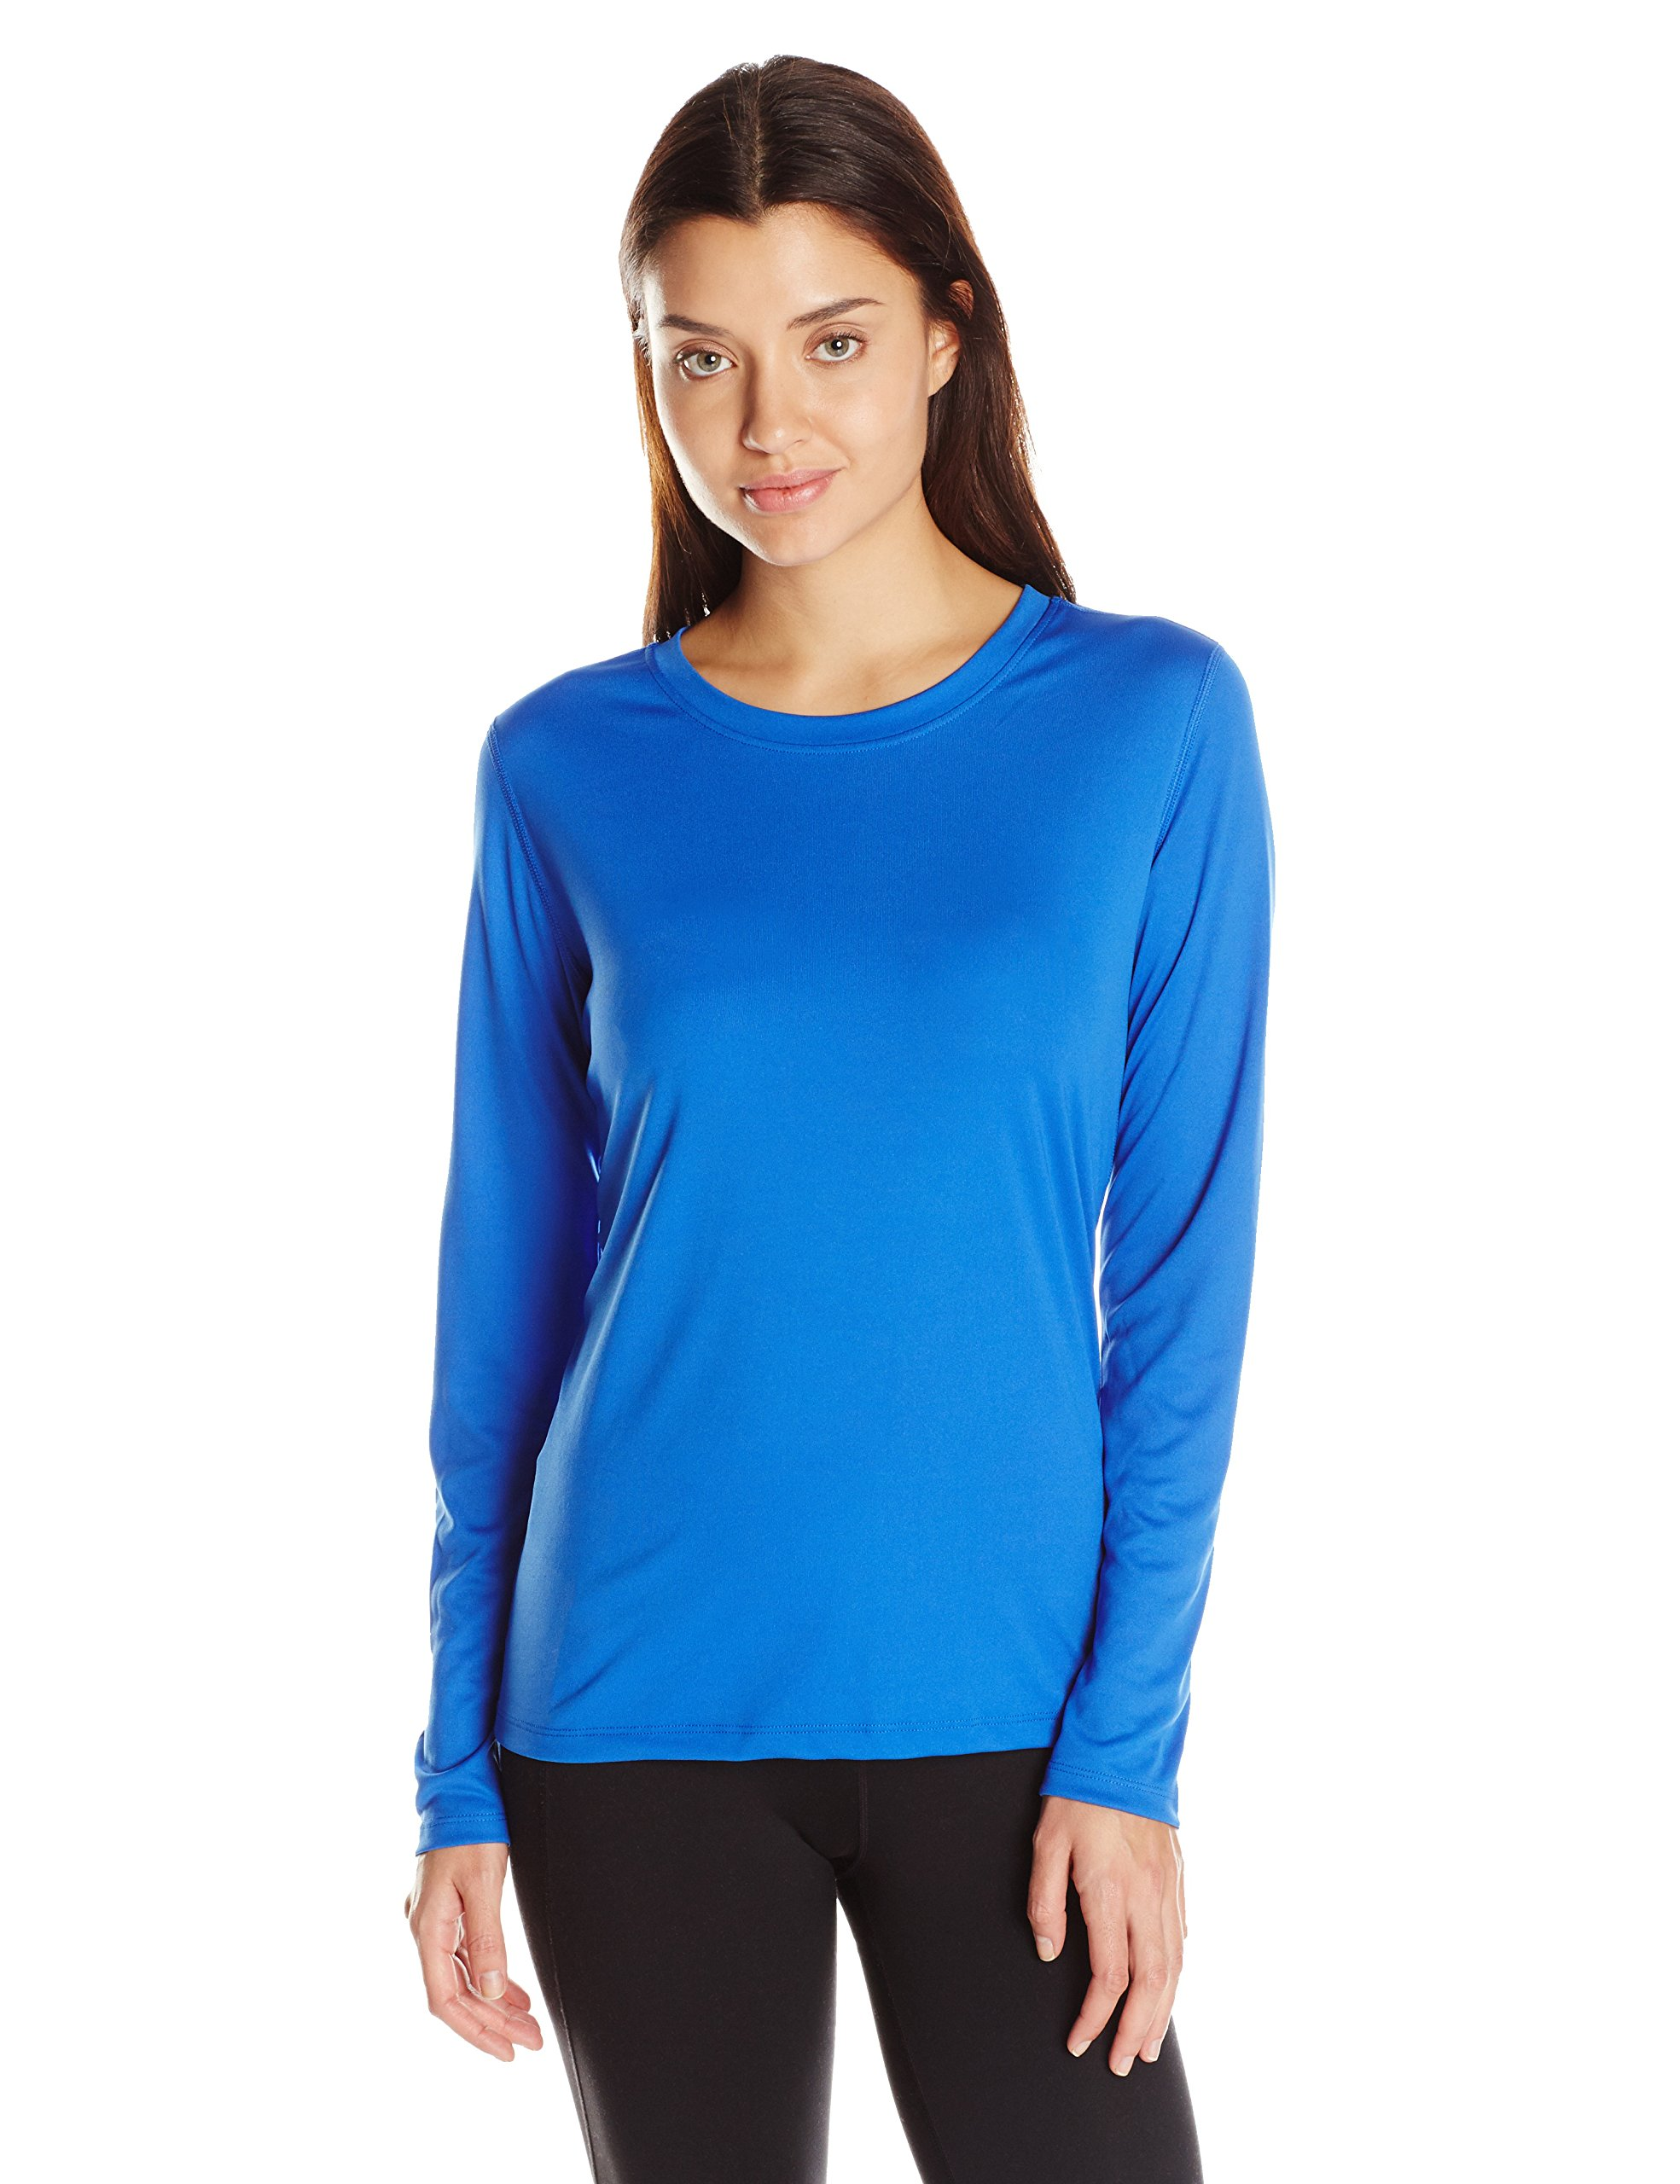 Hanes Womens Performance Sleeve Awesome